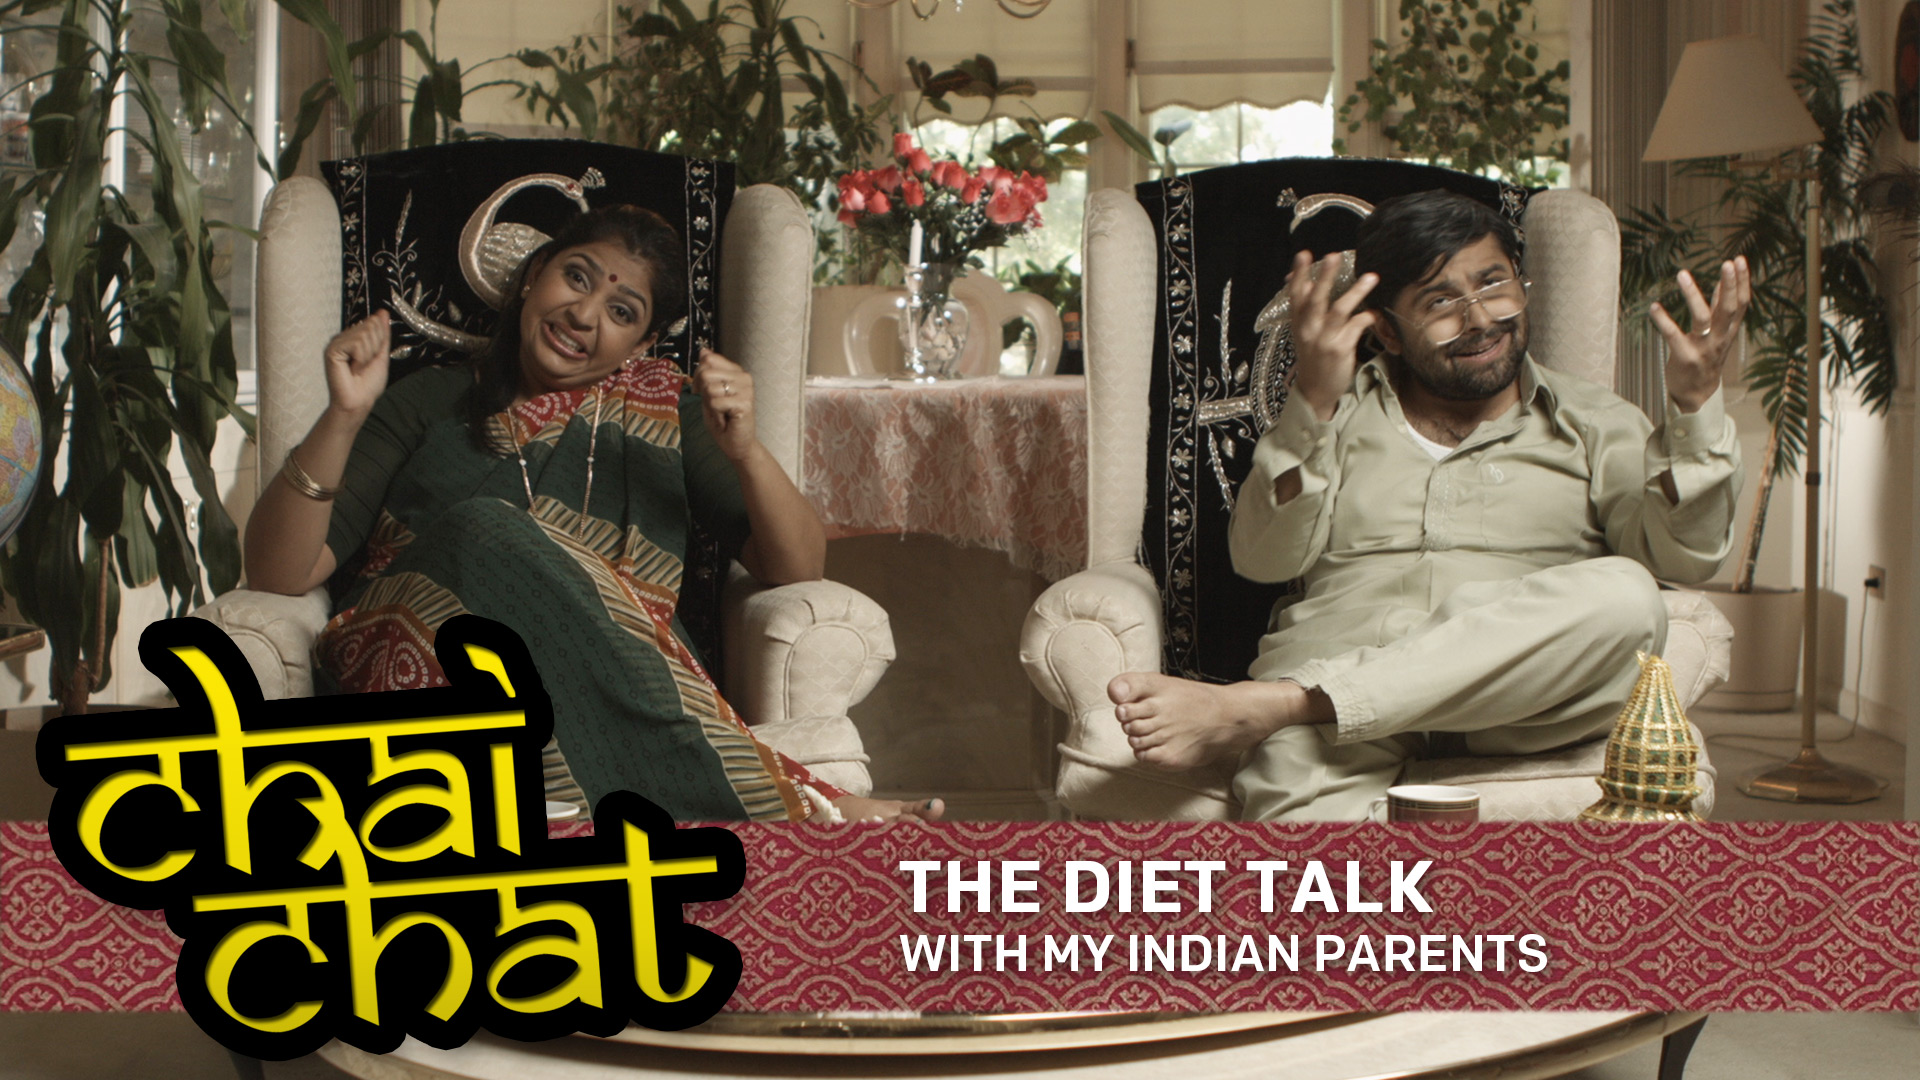 Chai Chat: The Diet Talk - With My Indian Parents